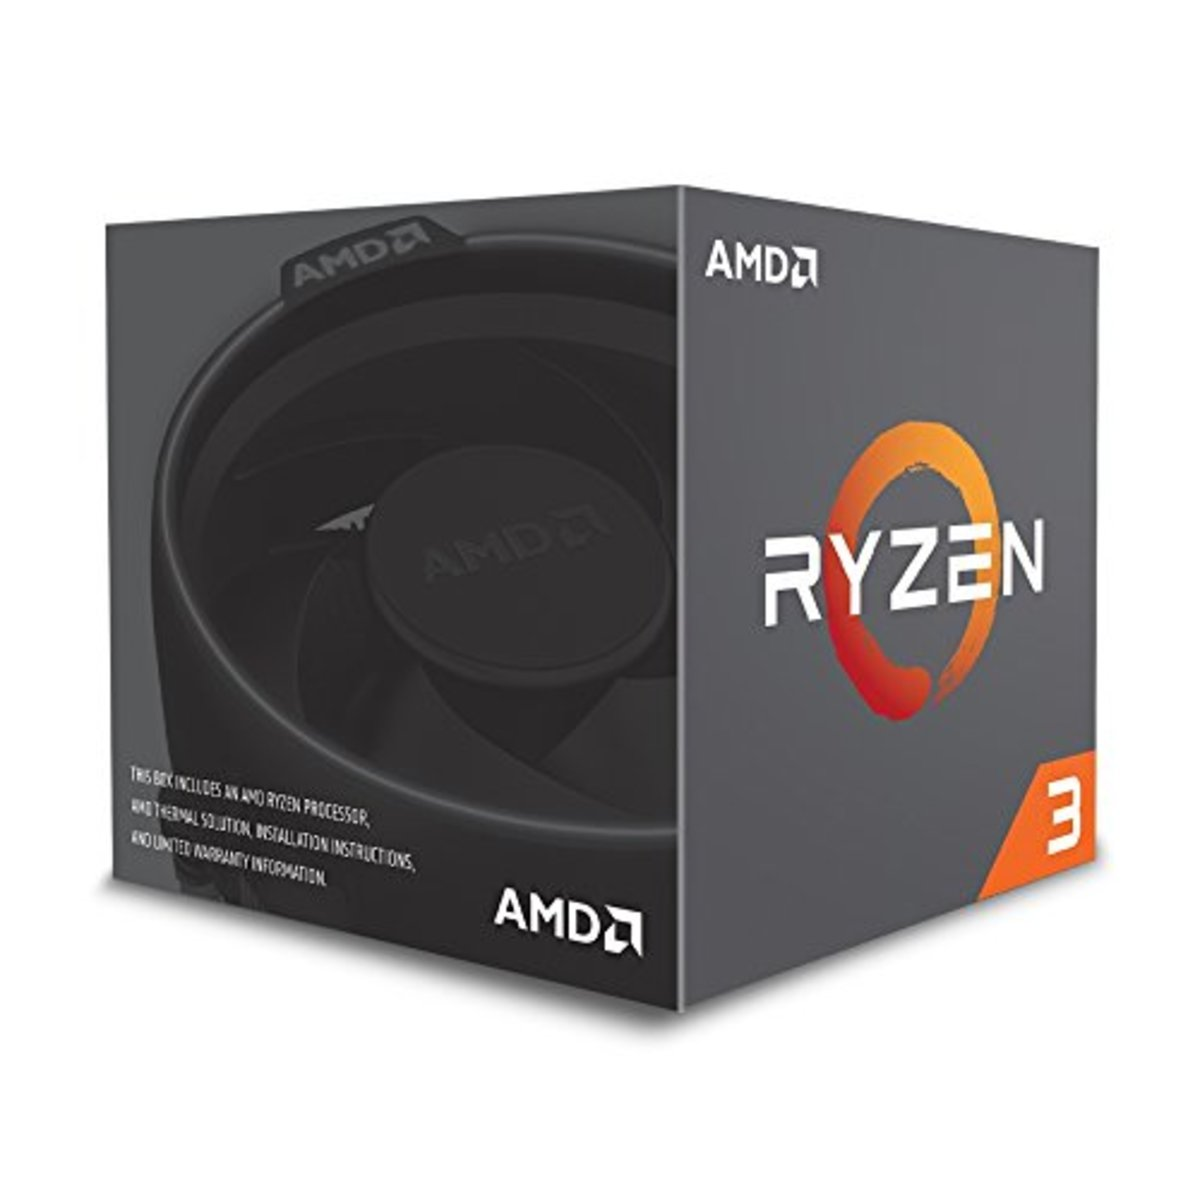 November 2017 AMD Budget PC Build